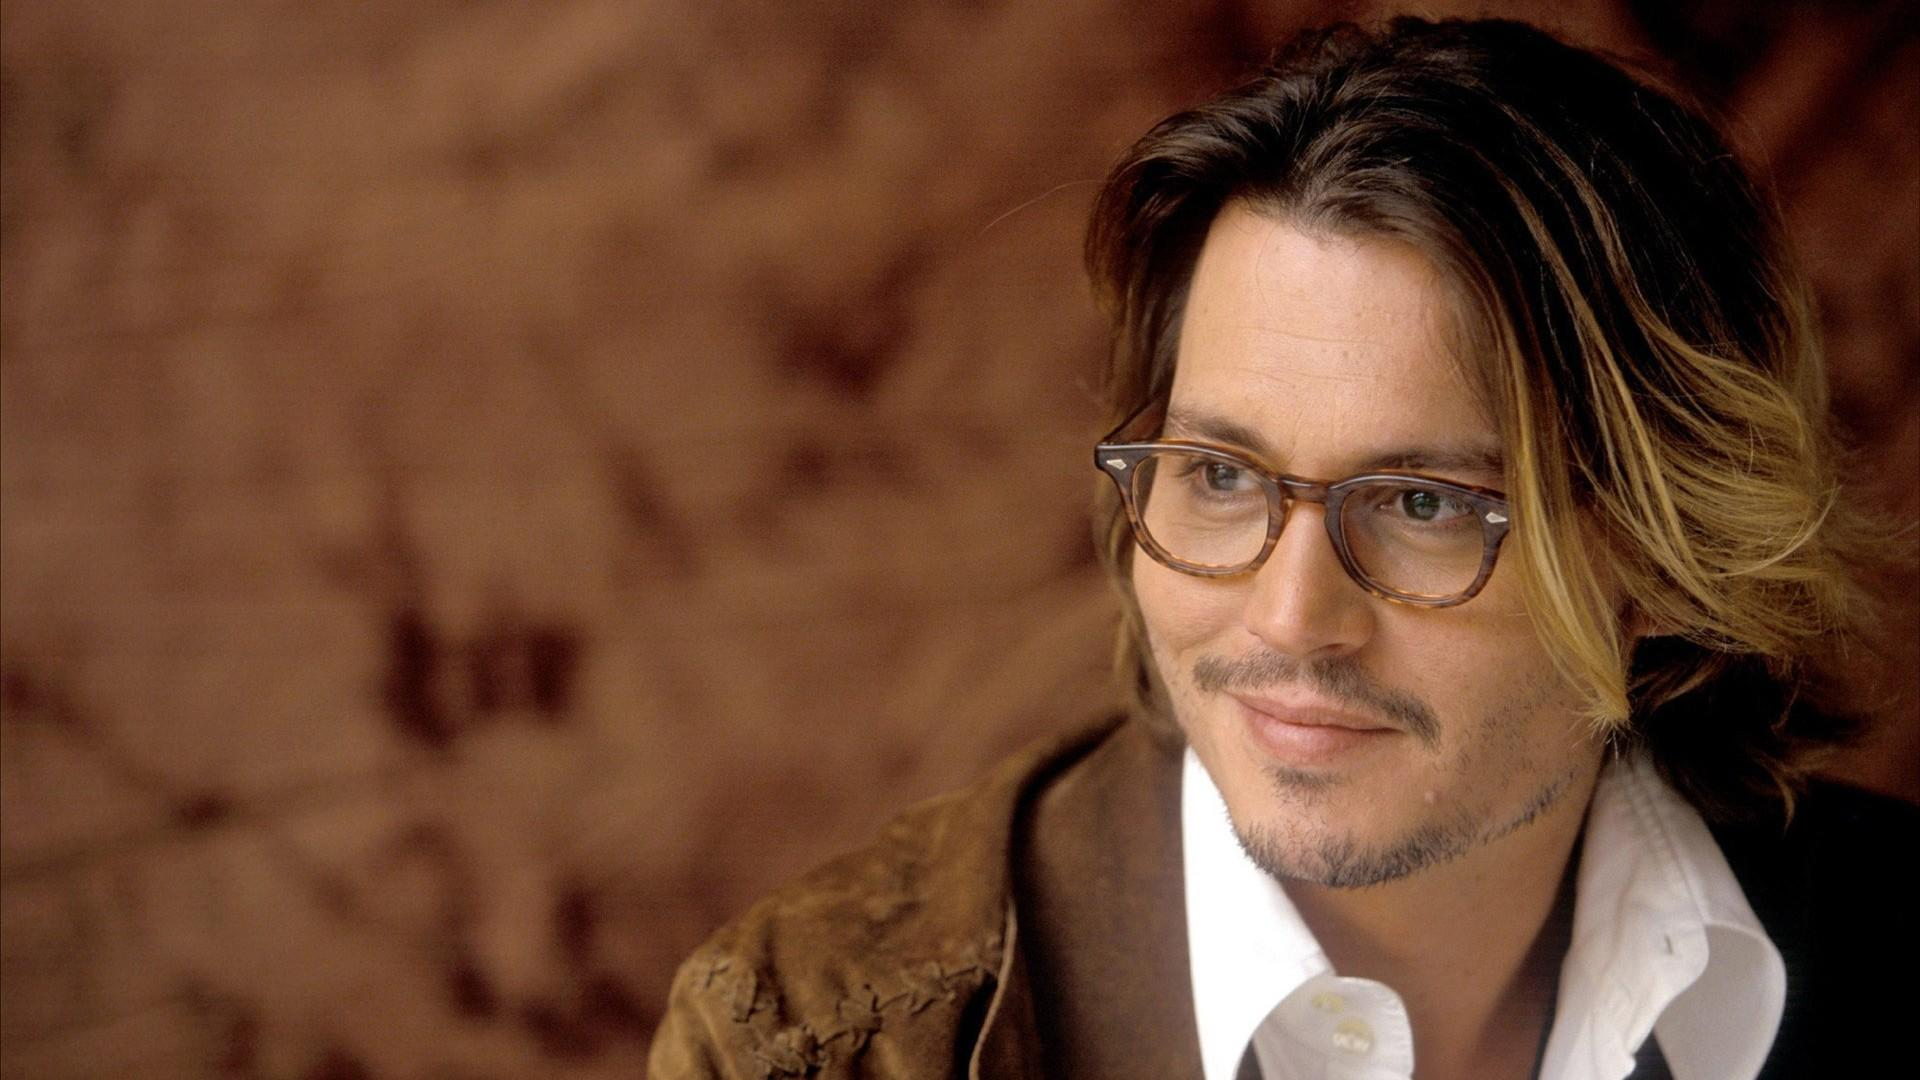 Johnny Depp 4 Free Hd Wallpaper